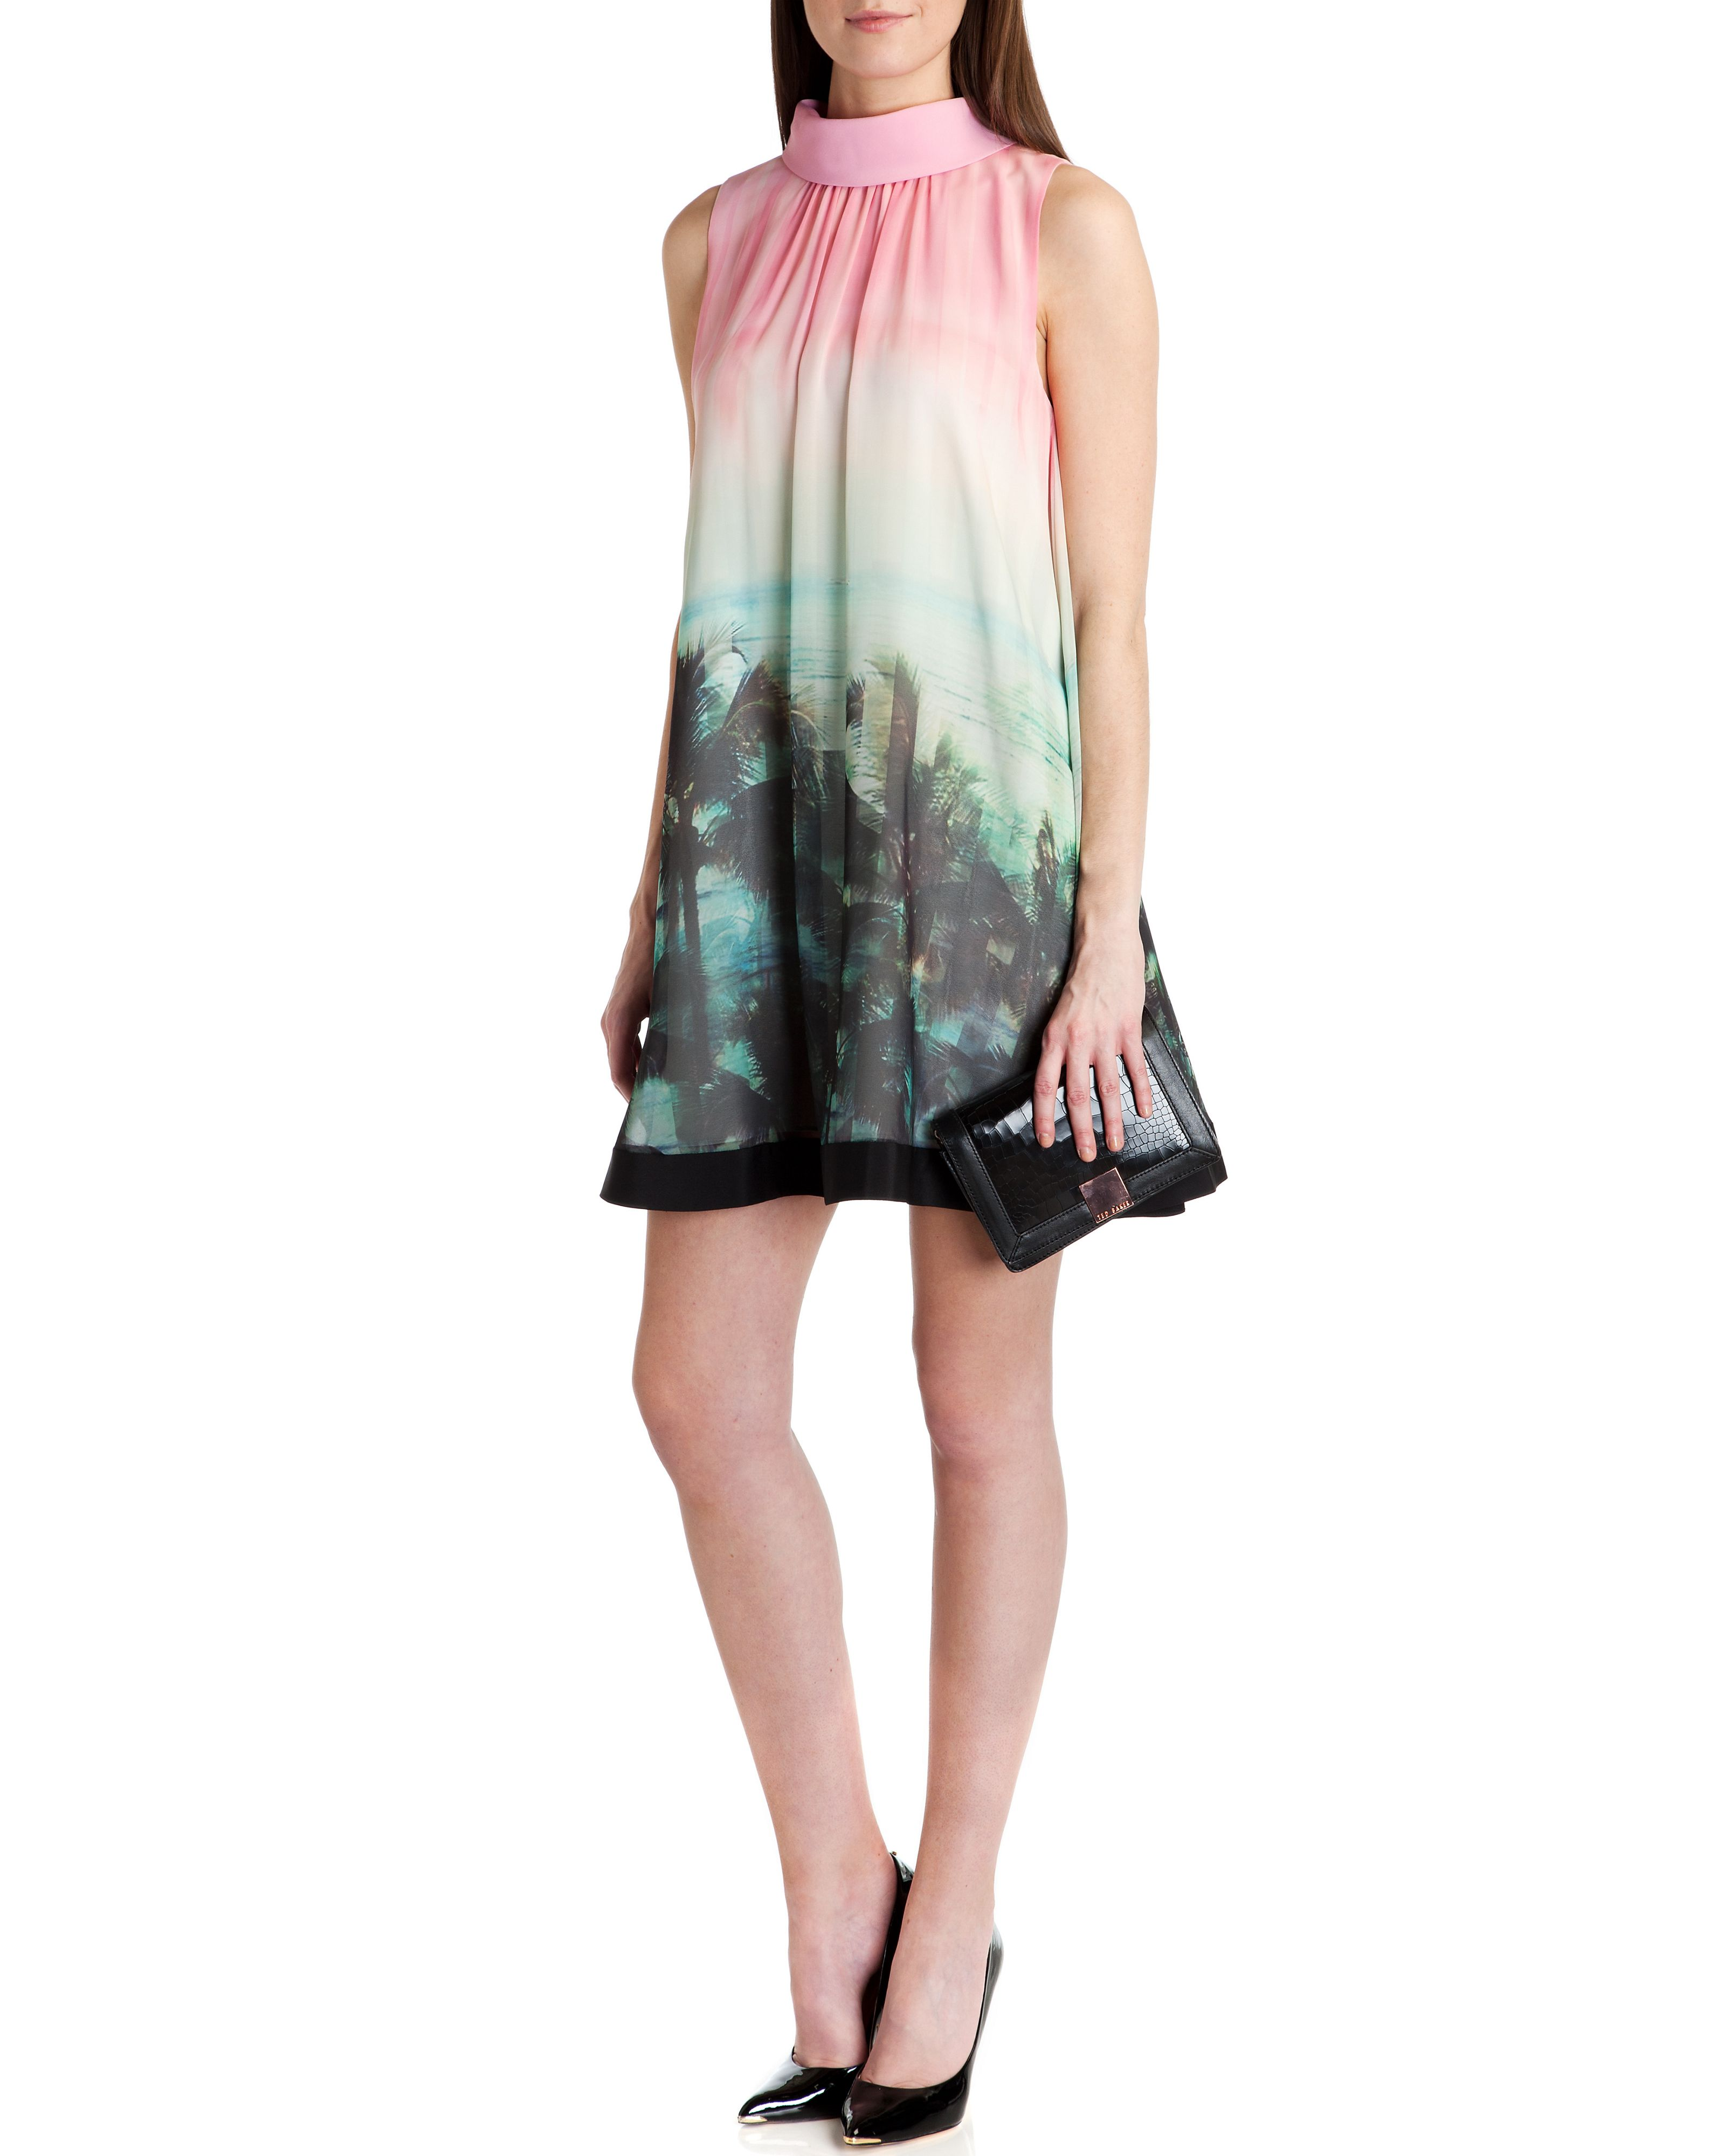 Jescca palm tree printed dress